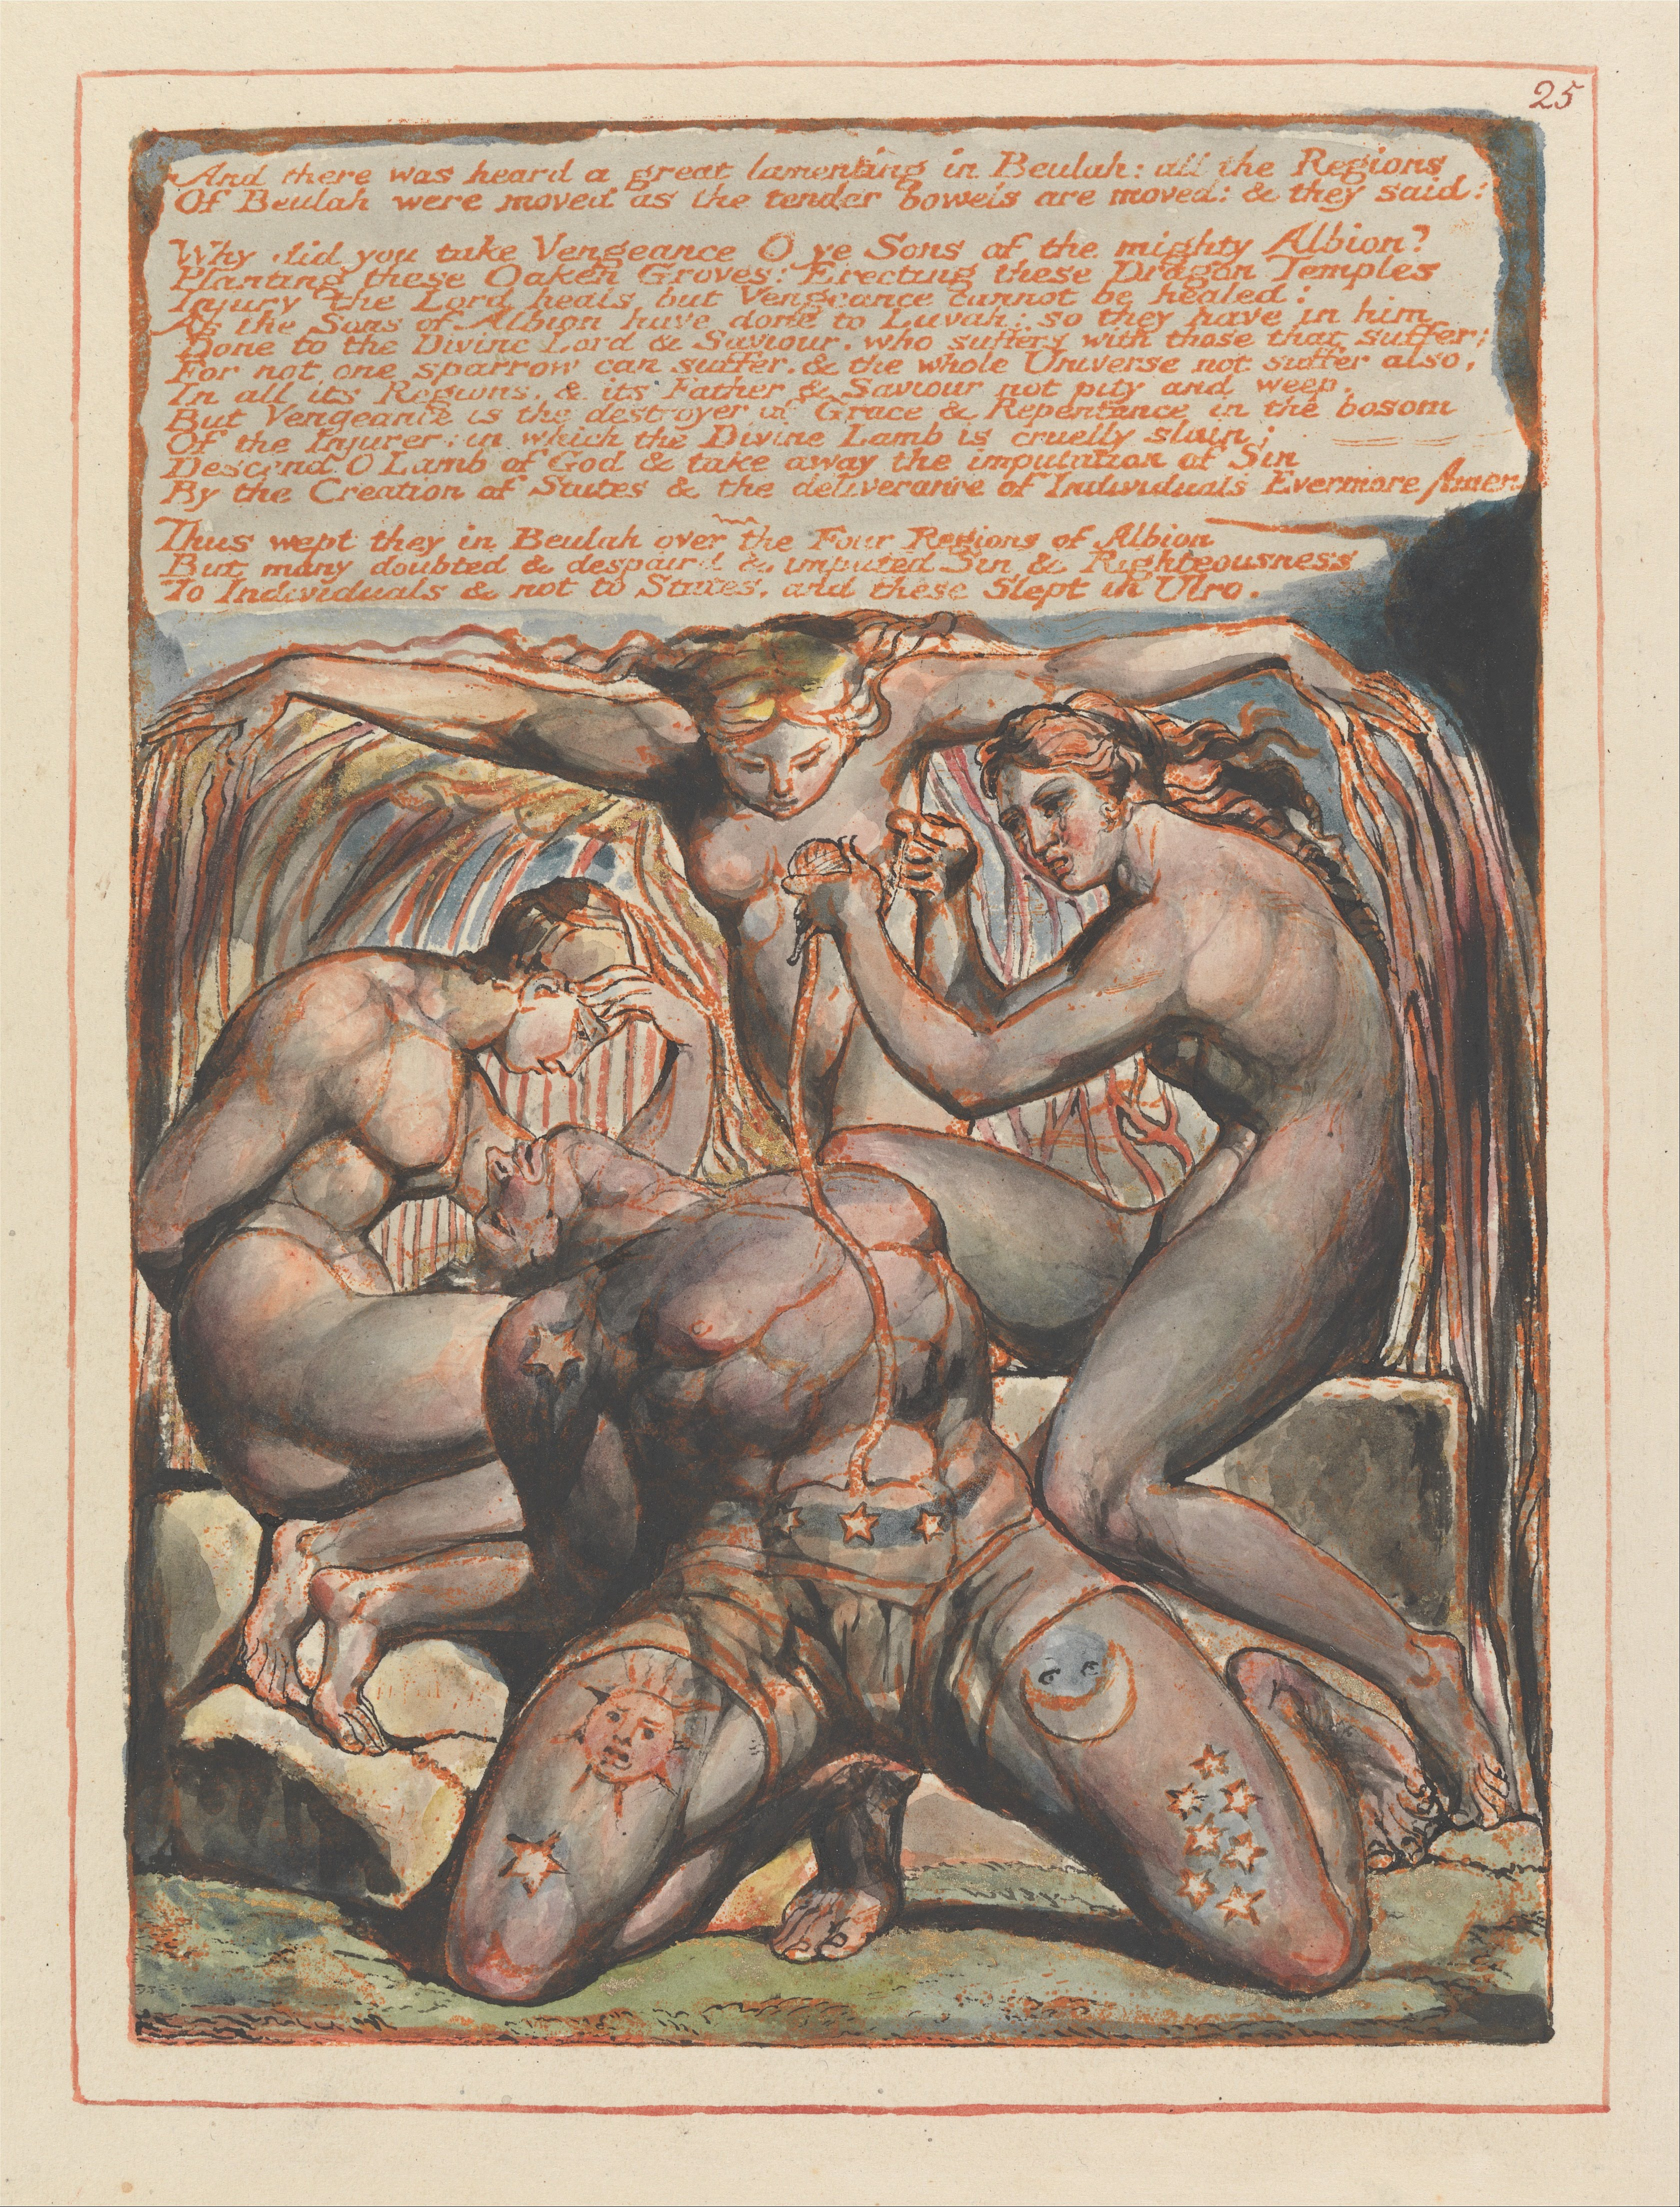 William_Blake_-_Jerusalem_Plate_25_22And_there_was_heard....22_-_Google_Art_Project.jpg